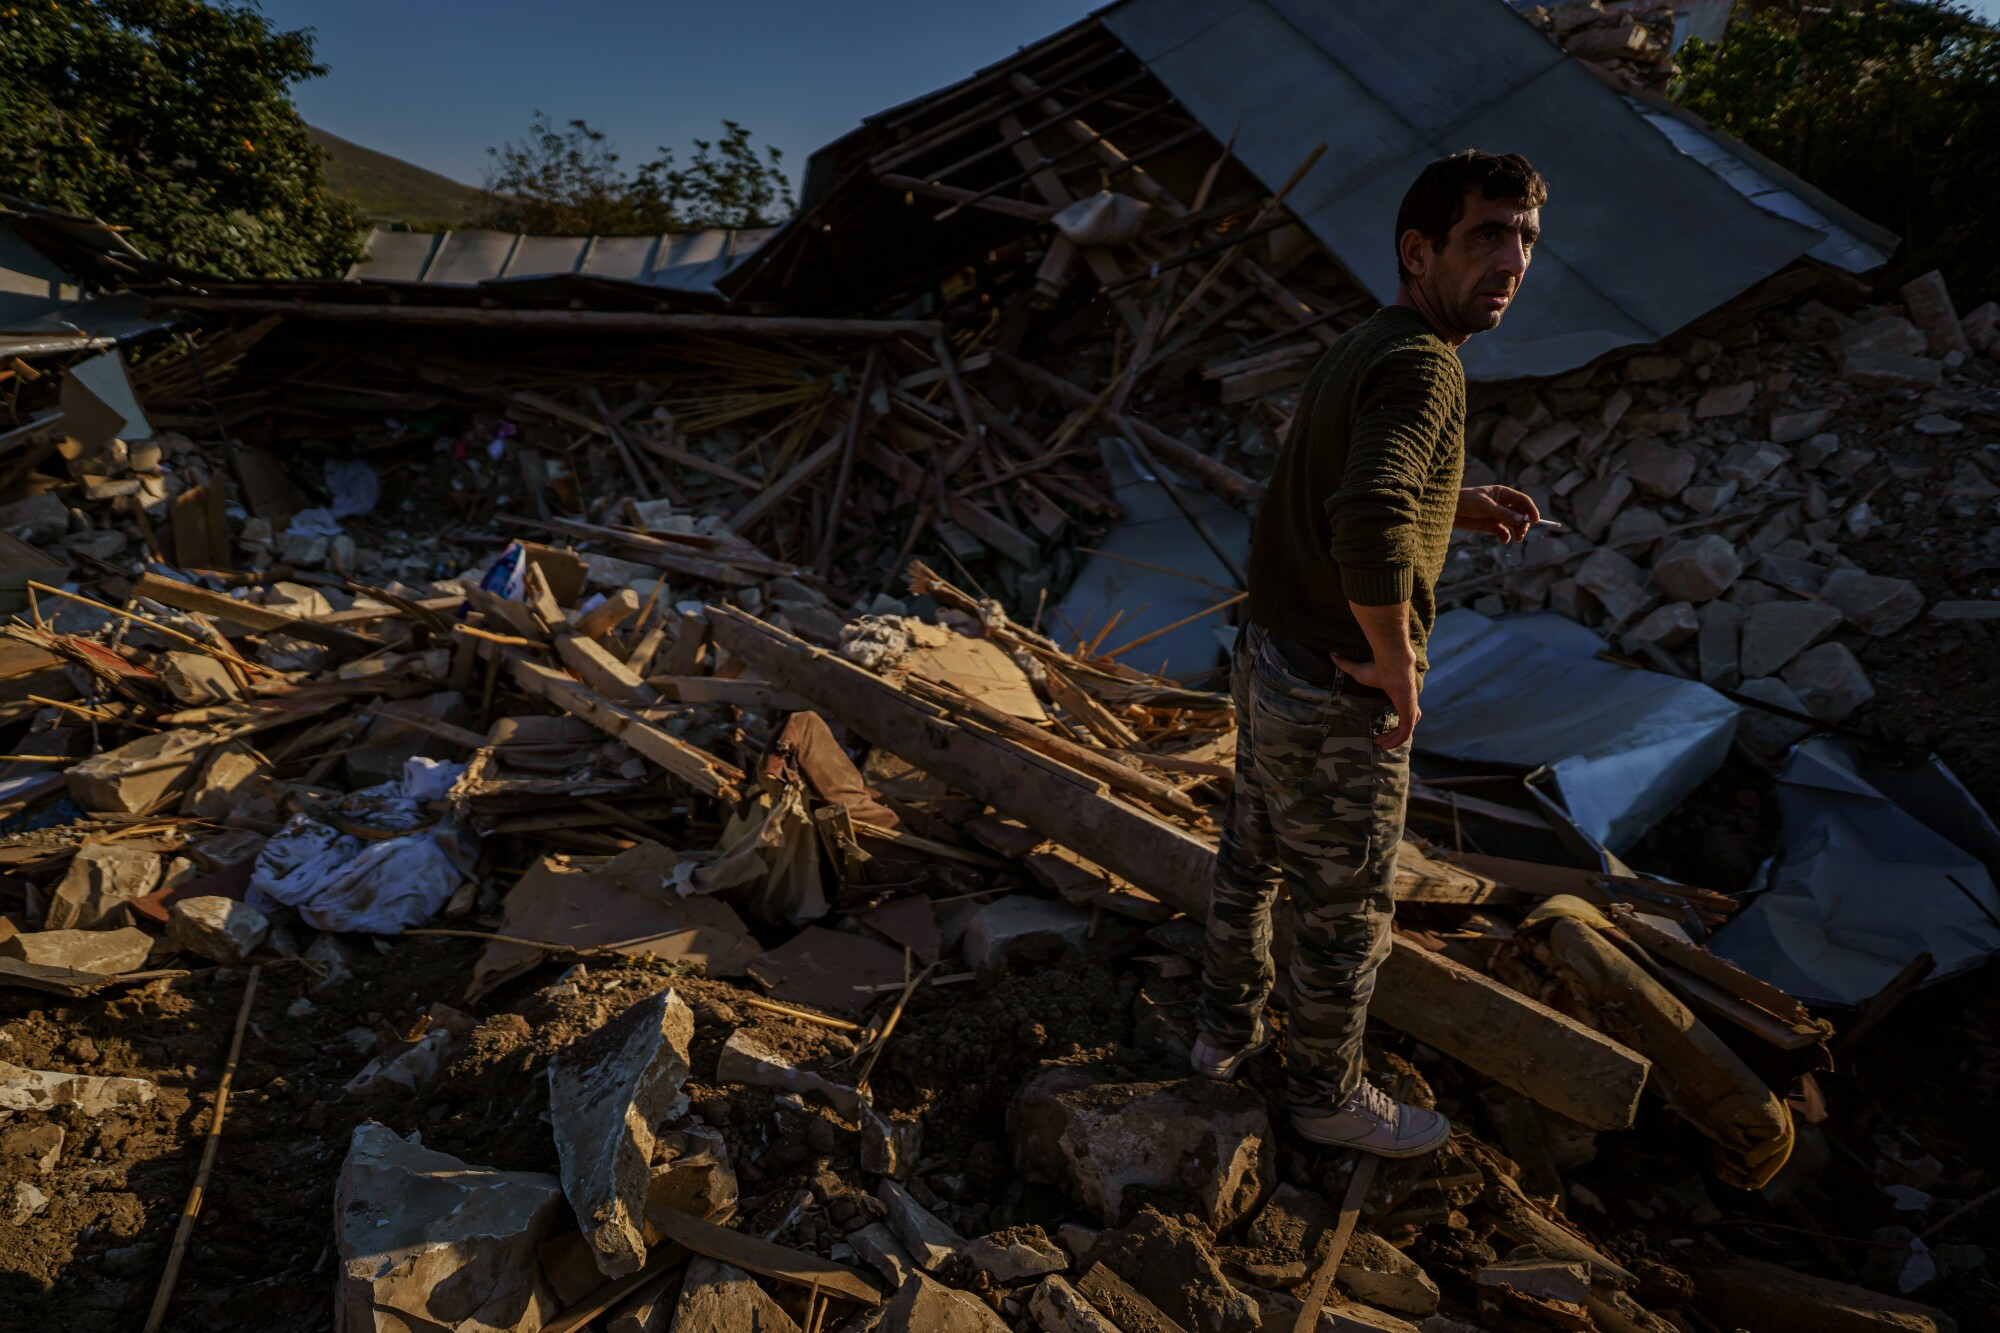 A man stands amid the ruins of a home after a military strike in Nagorno-Karabakh.